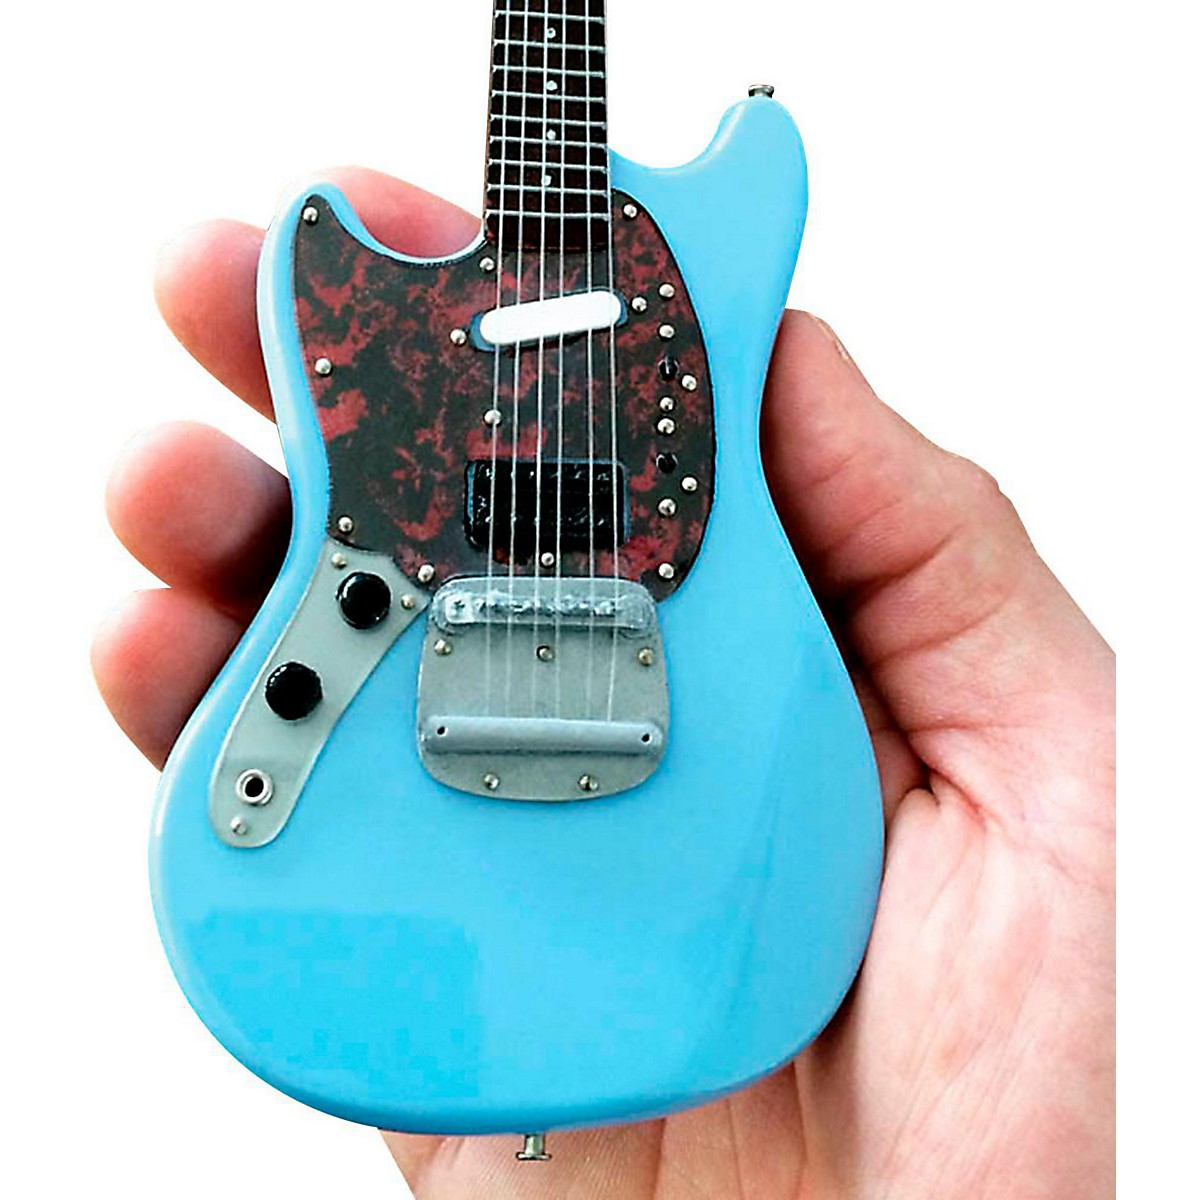 Axe Heaven Fender Mustang Sonic Blue Miniature Guitar Replica Collectible